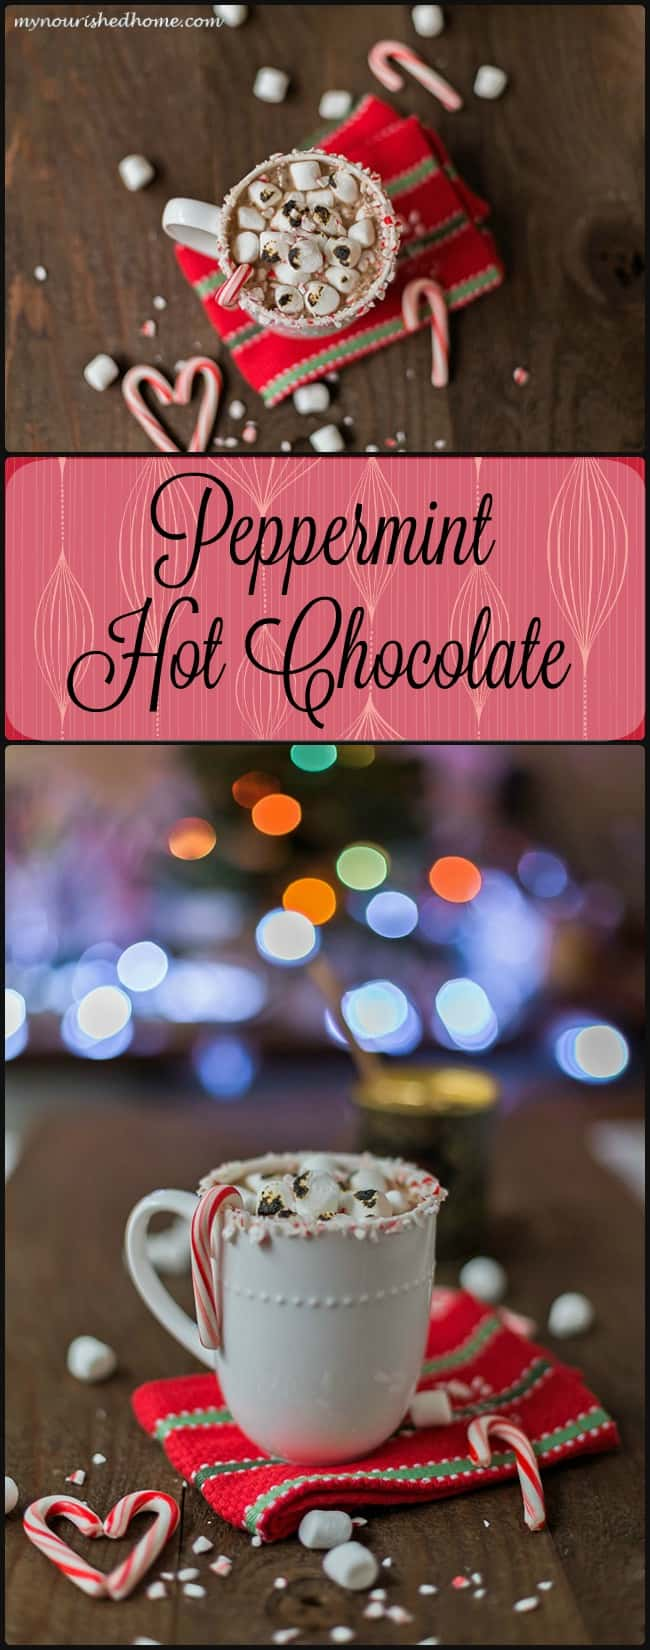 This is the most Decadent Hot Chocolate that Santa (and my kids) ever had! It hangs out around our house as long as there are candy canes for the holiday!